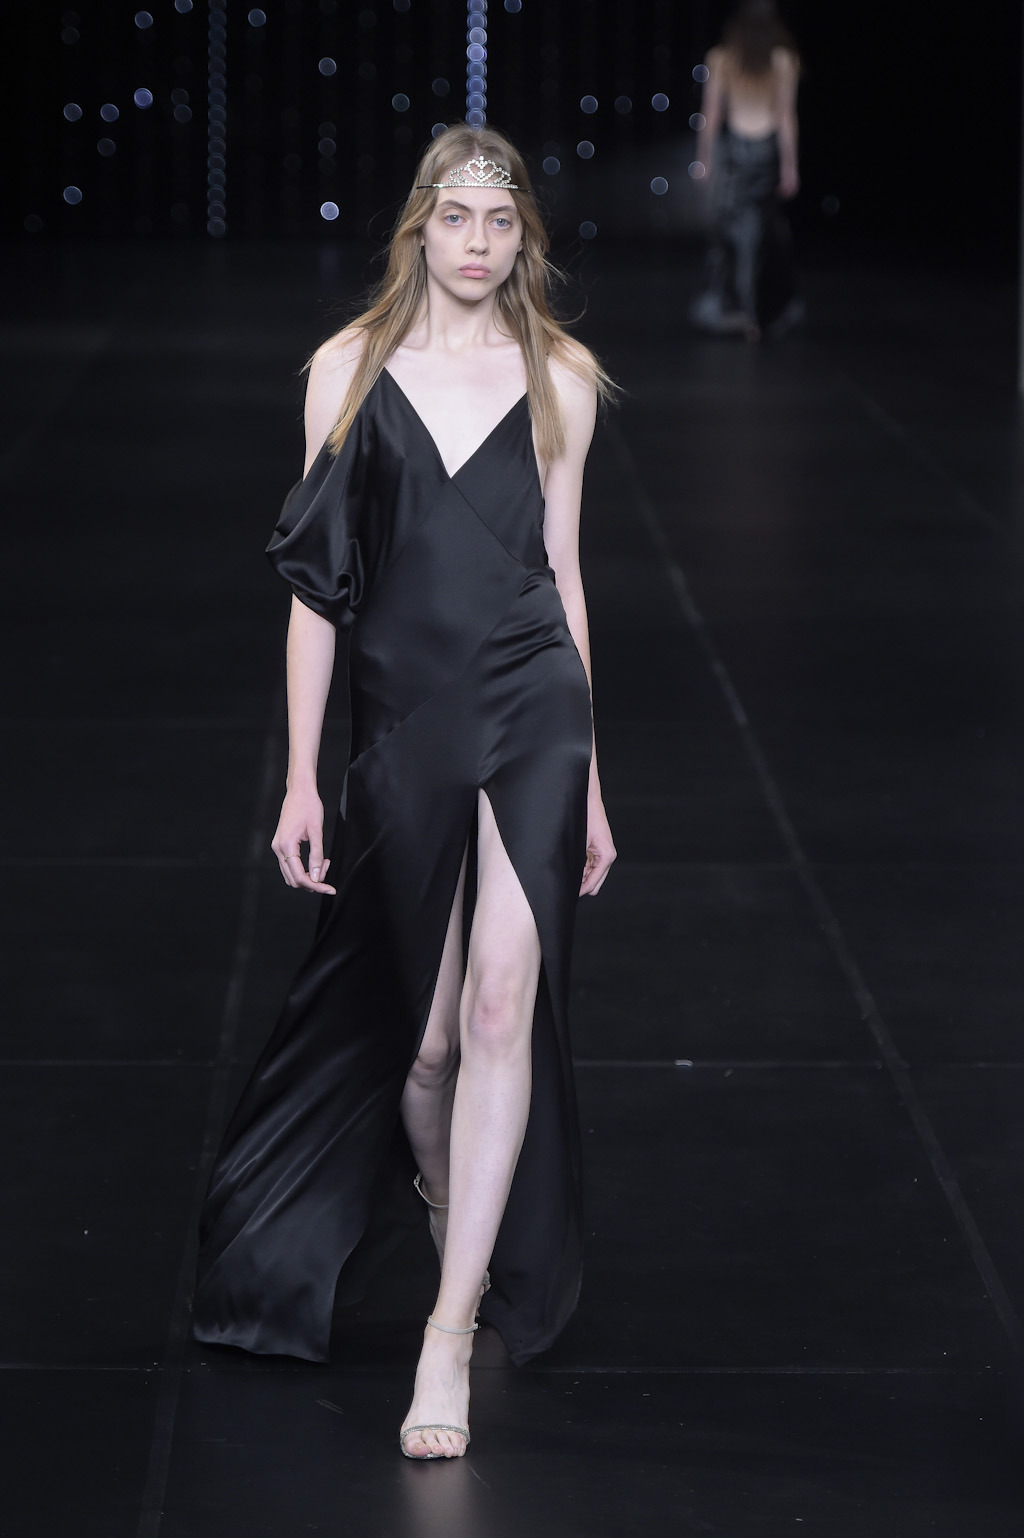 saint-laurent-s16-57